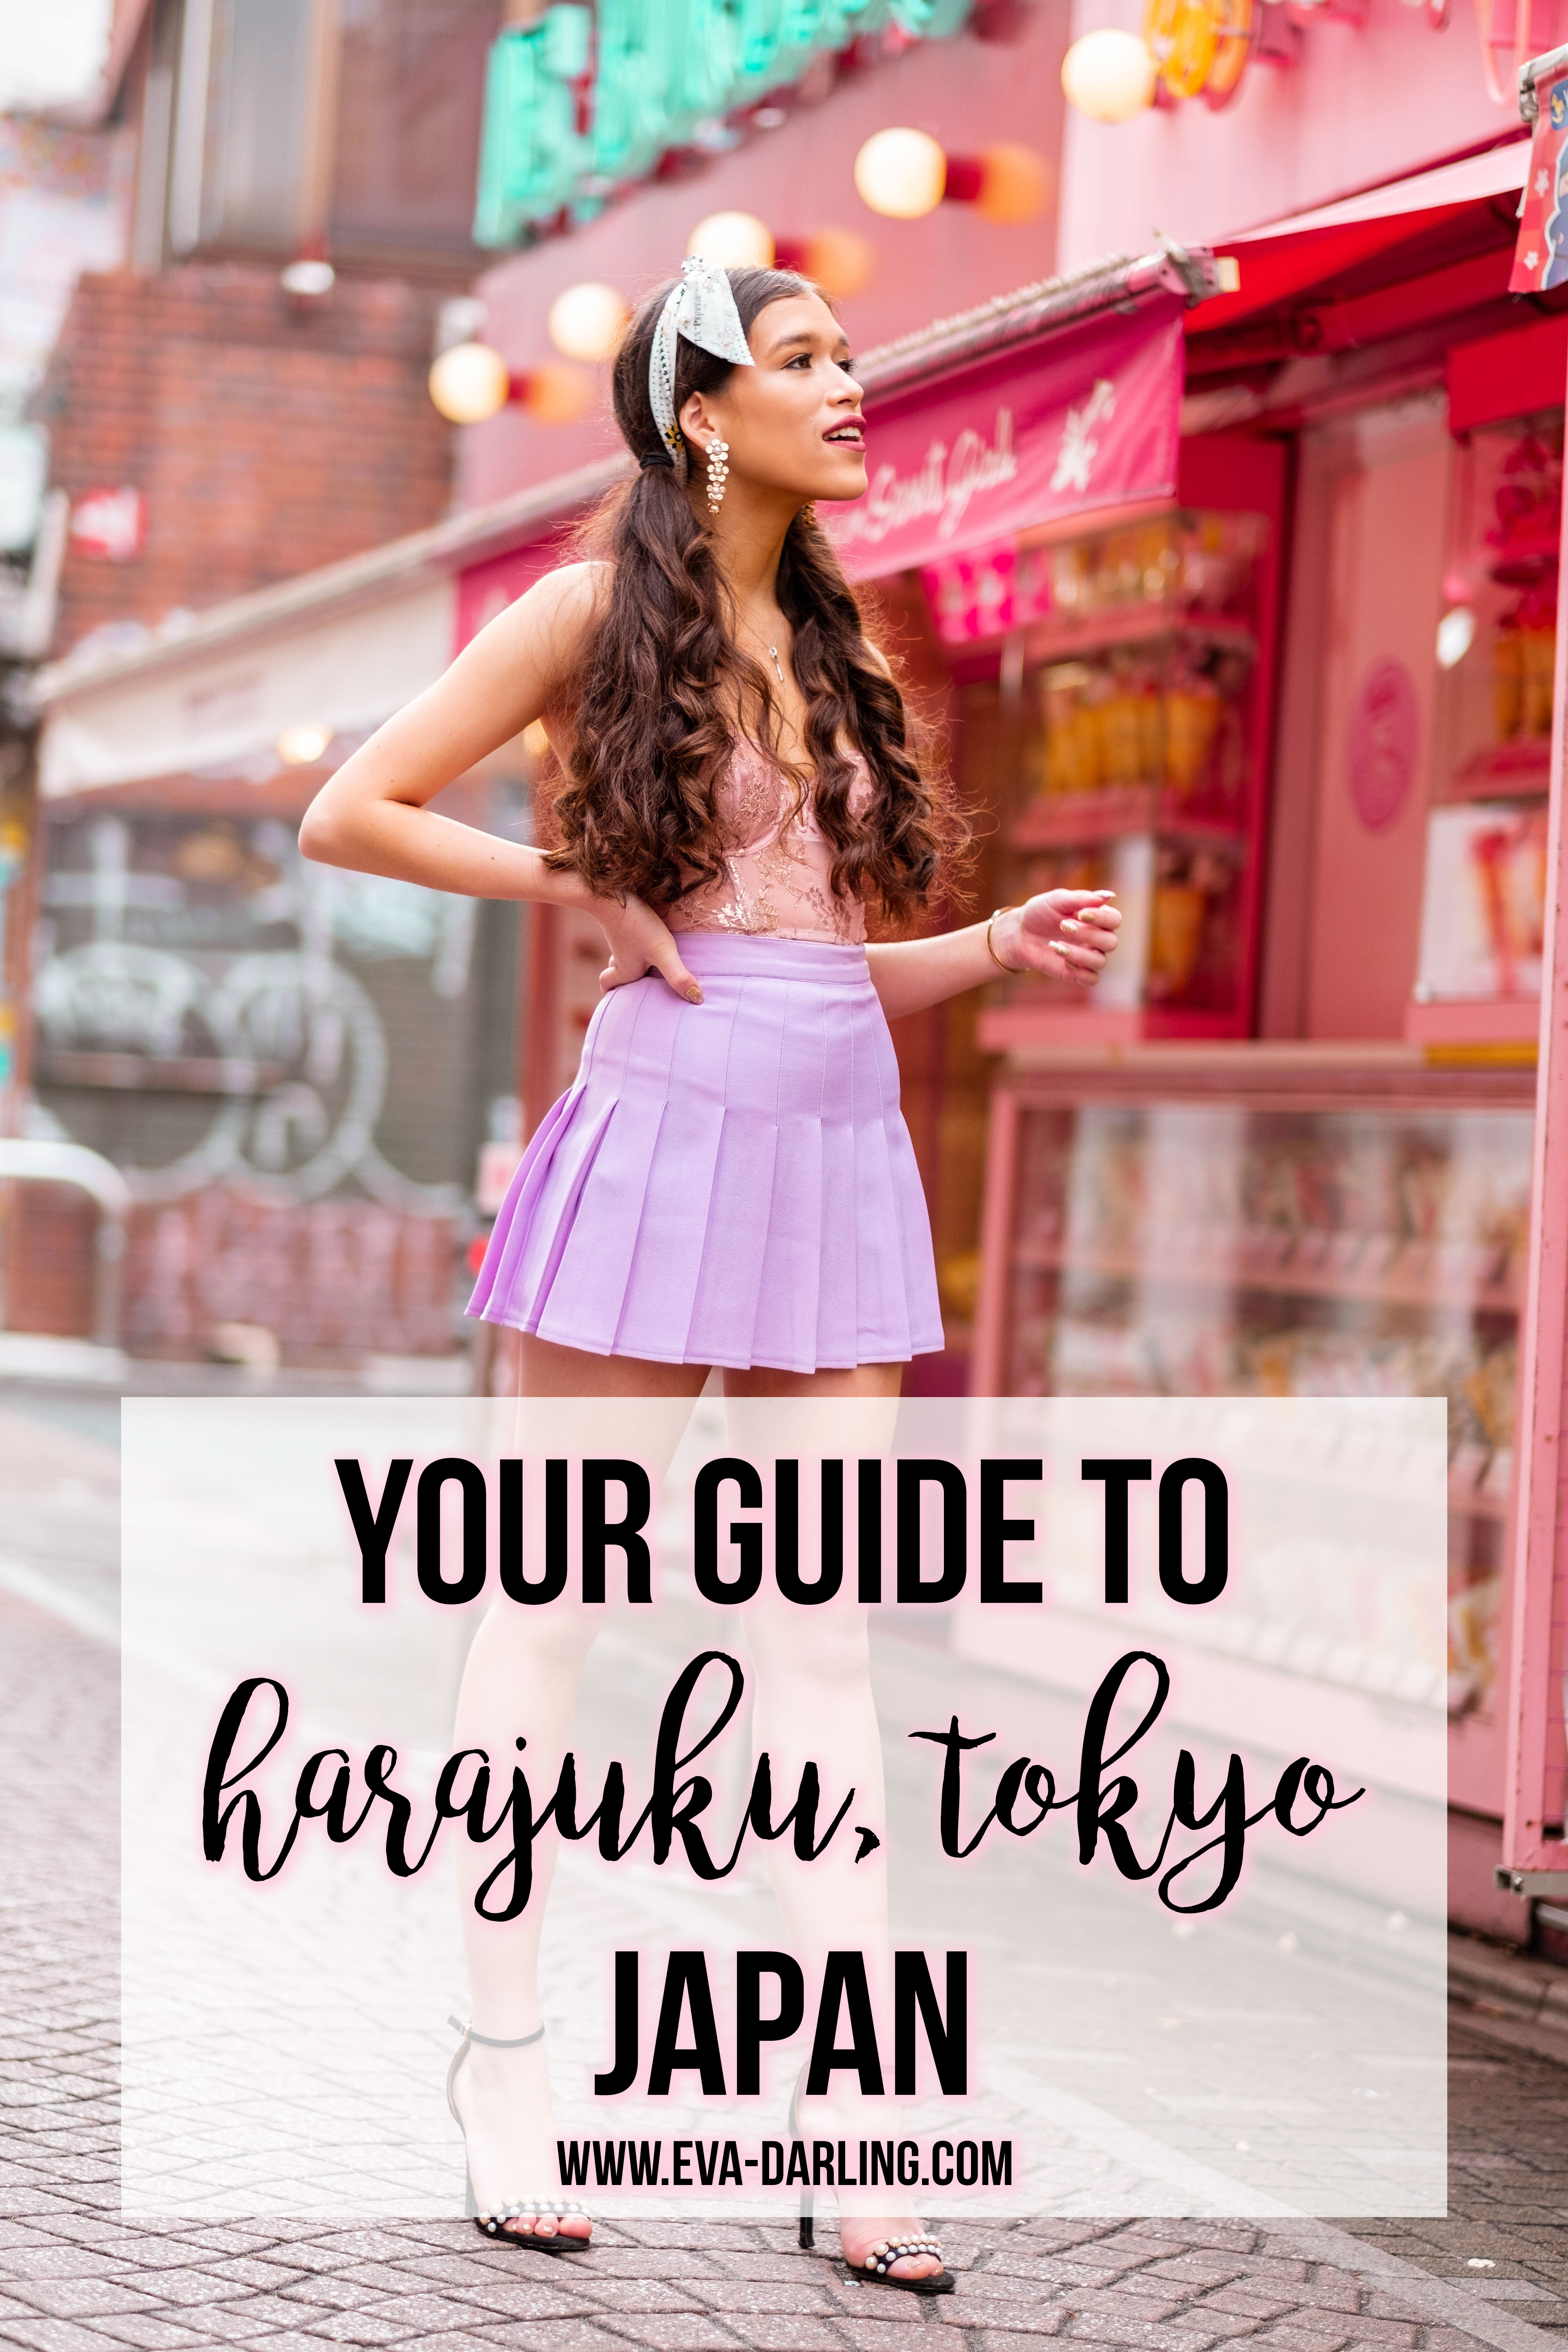 NYC based style and travel blogger Eva Phan on tips and tricks for shopping in Harajuku Tokyo santa monica crepe kawaii style ootd girl victoria's secret demure pink with rose gold foil scalloped lace american apparel lilac pleated tennis skirt boohoo pearl strap stilettos dior mitzah tarot twilly scarf how to wear a hair scarf japan travel guide where to go in shibuya crepe santa monica angel teen girl fashion curled hair pigtails easy hairstyle long hair